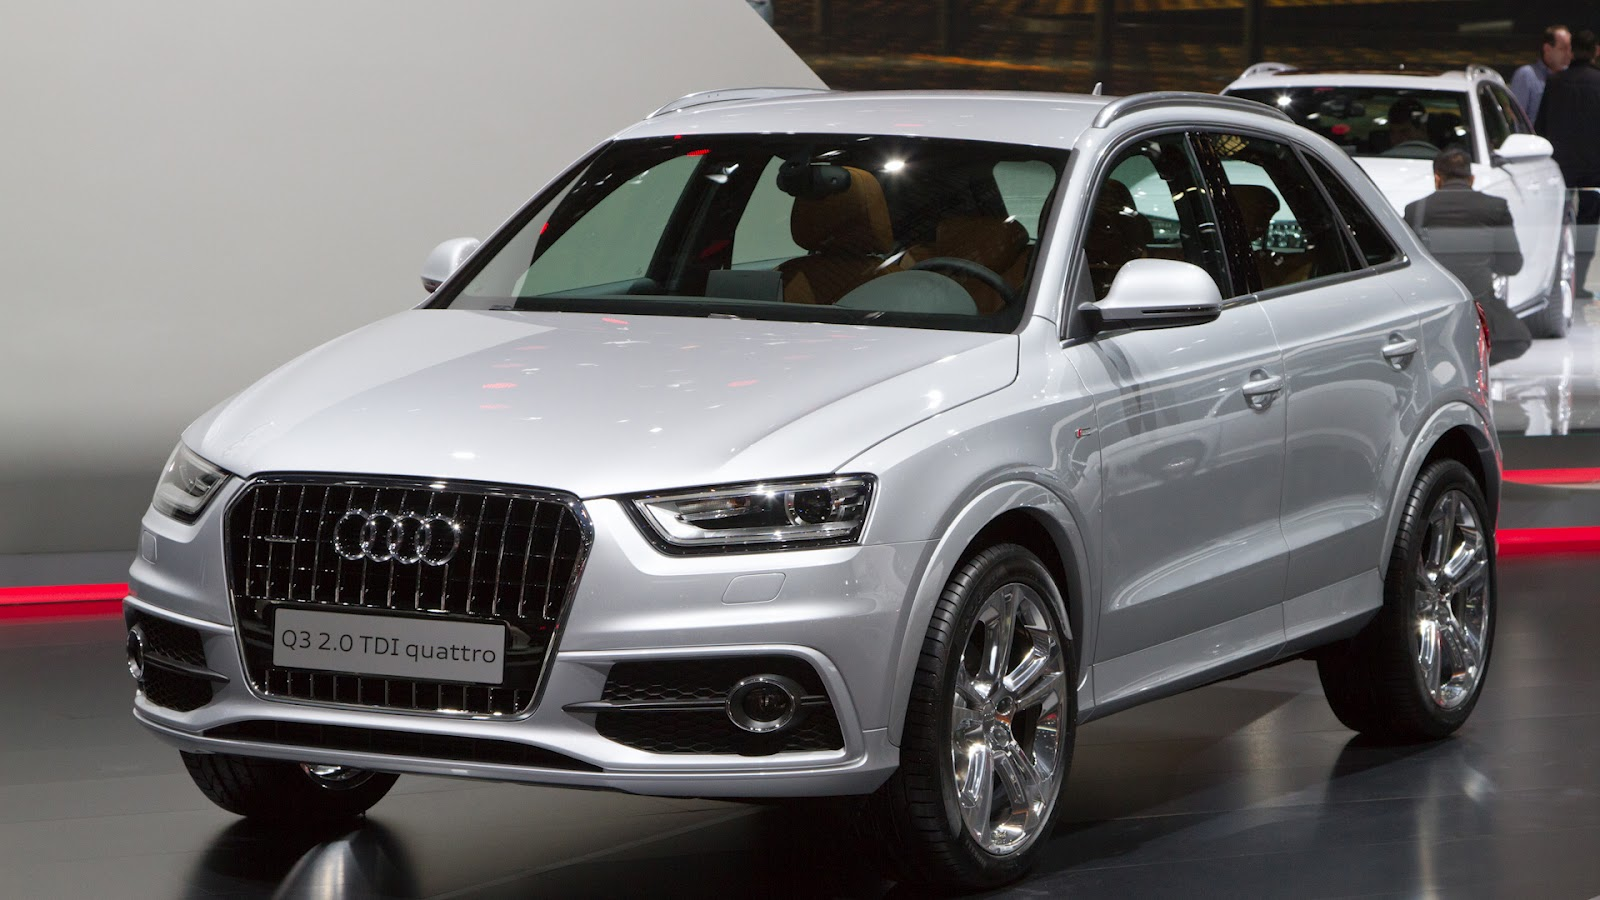 Santa Fe Chevrolet >> 2013 Audi Q3 – pictures, information and specs - Auto-Database.com